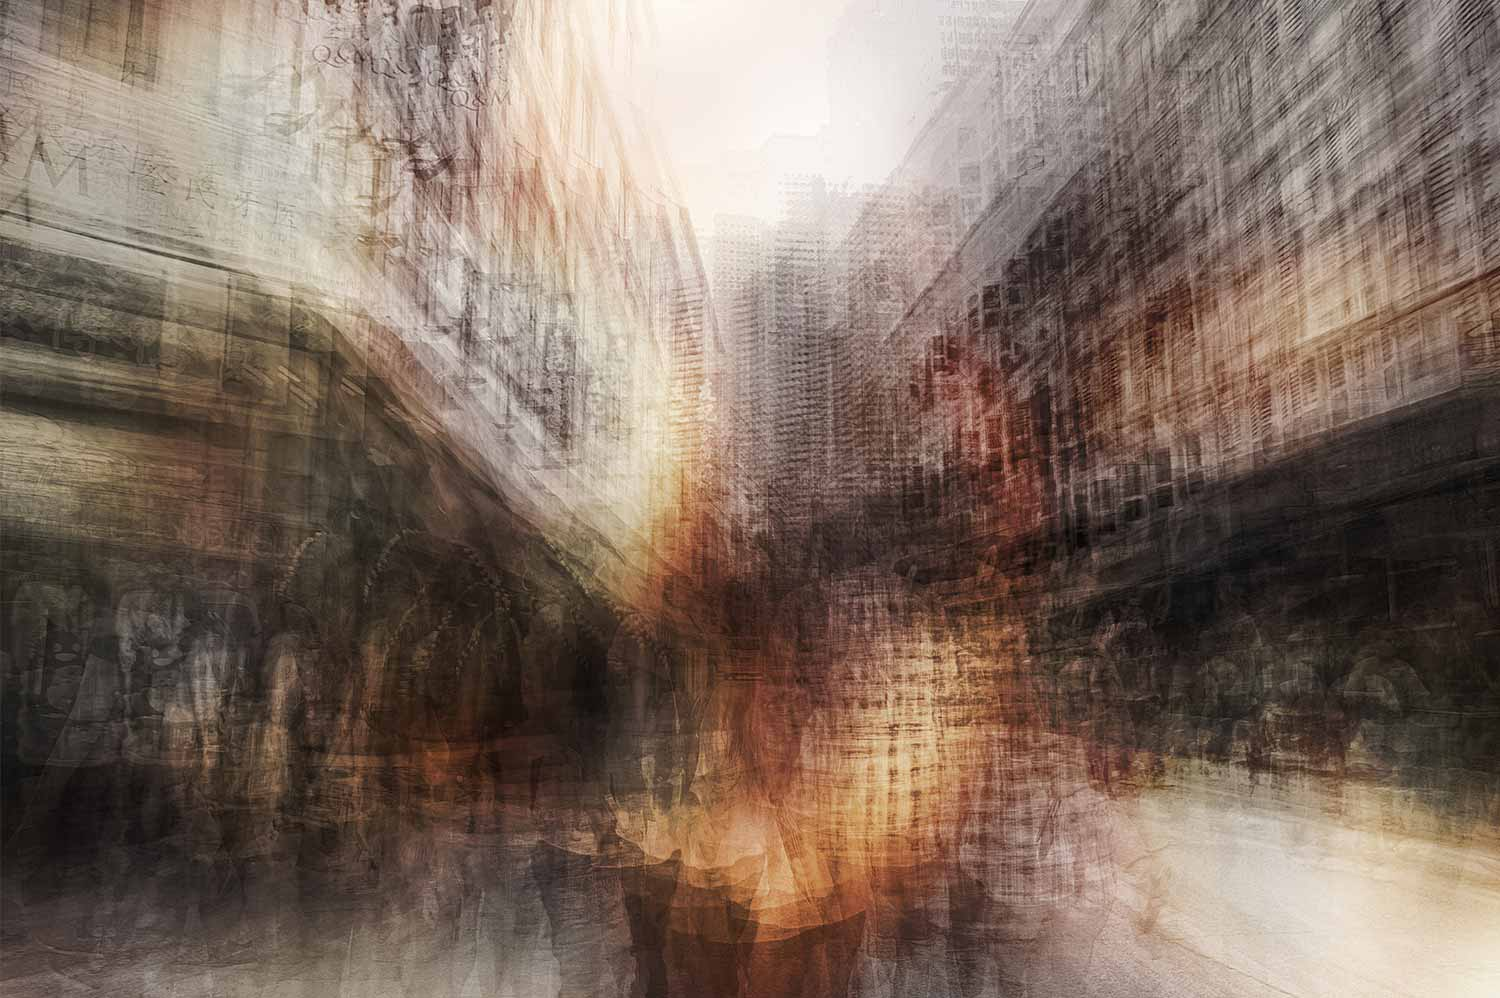 Alfonso Bonilla,  Liang Street,  Chromaluxe Photograph. 18 x 24 in.